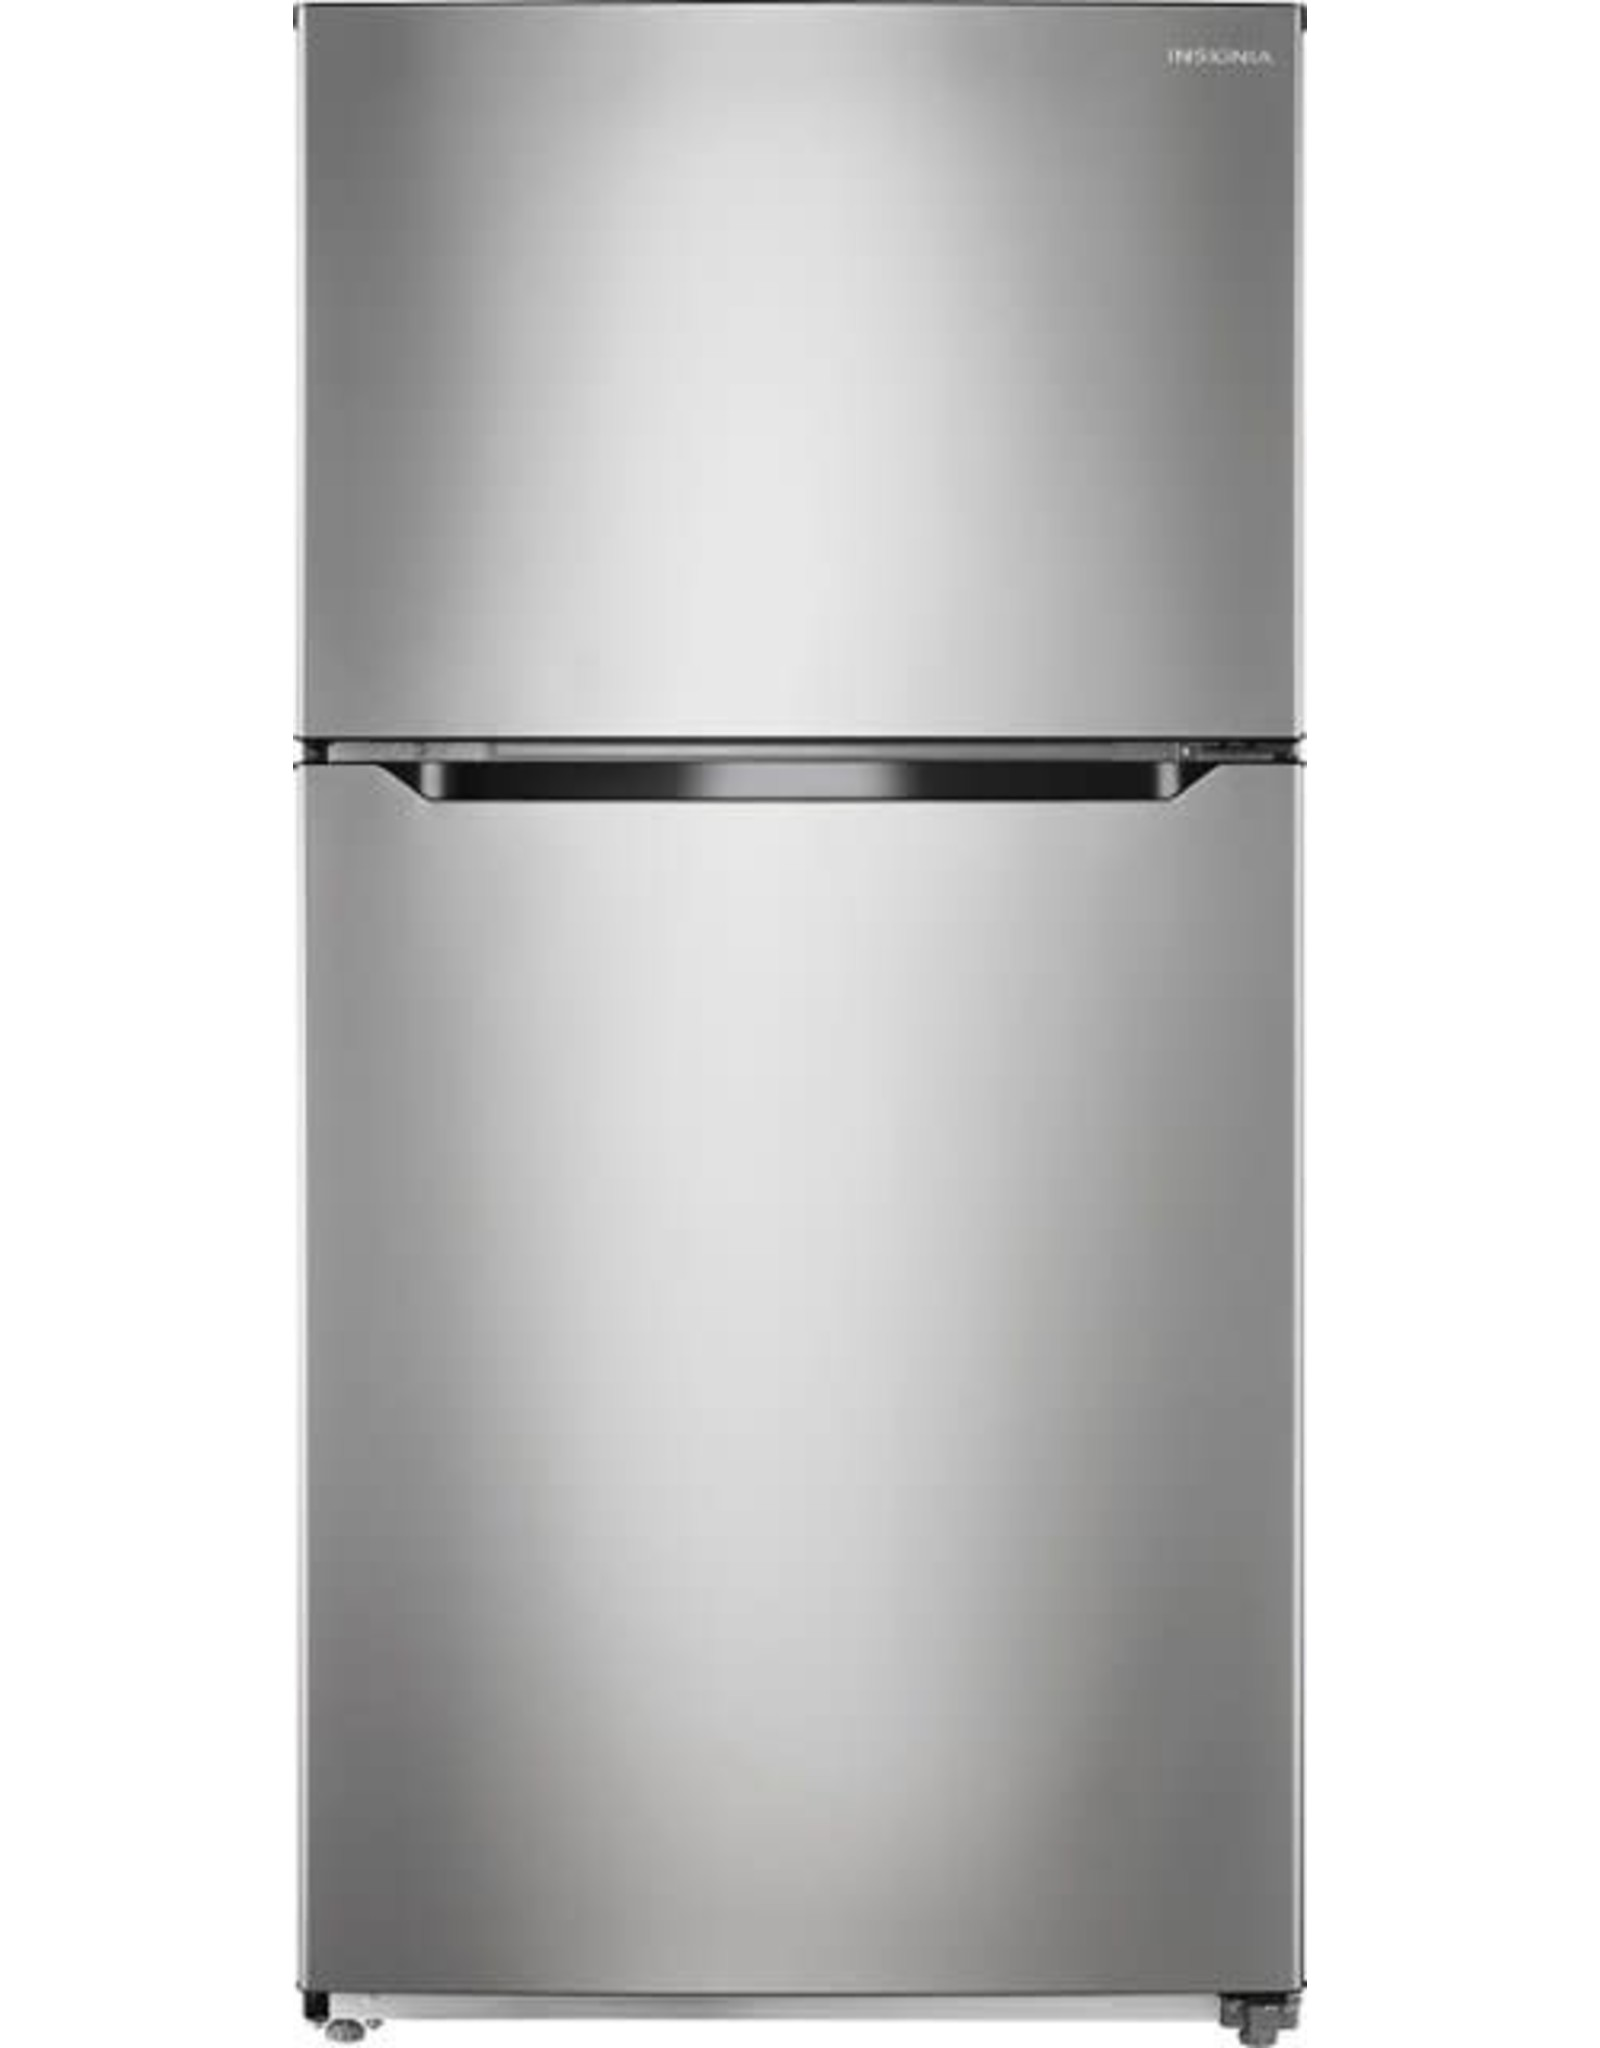 Insignia™ NS-RTM21SS7 Insignia™ - 21 Cu. Ft. Top-Freezer Refrigerator - Stainless steel